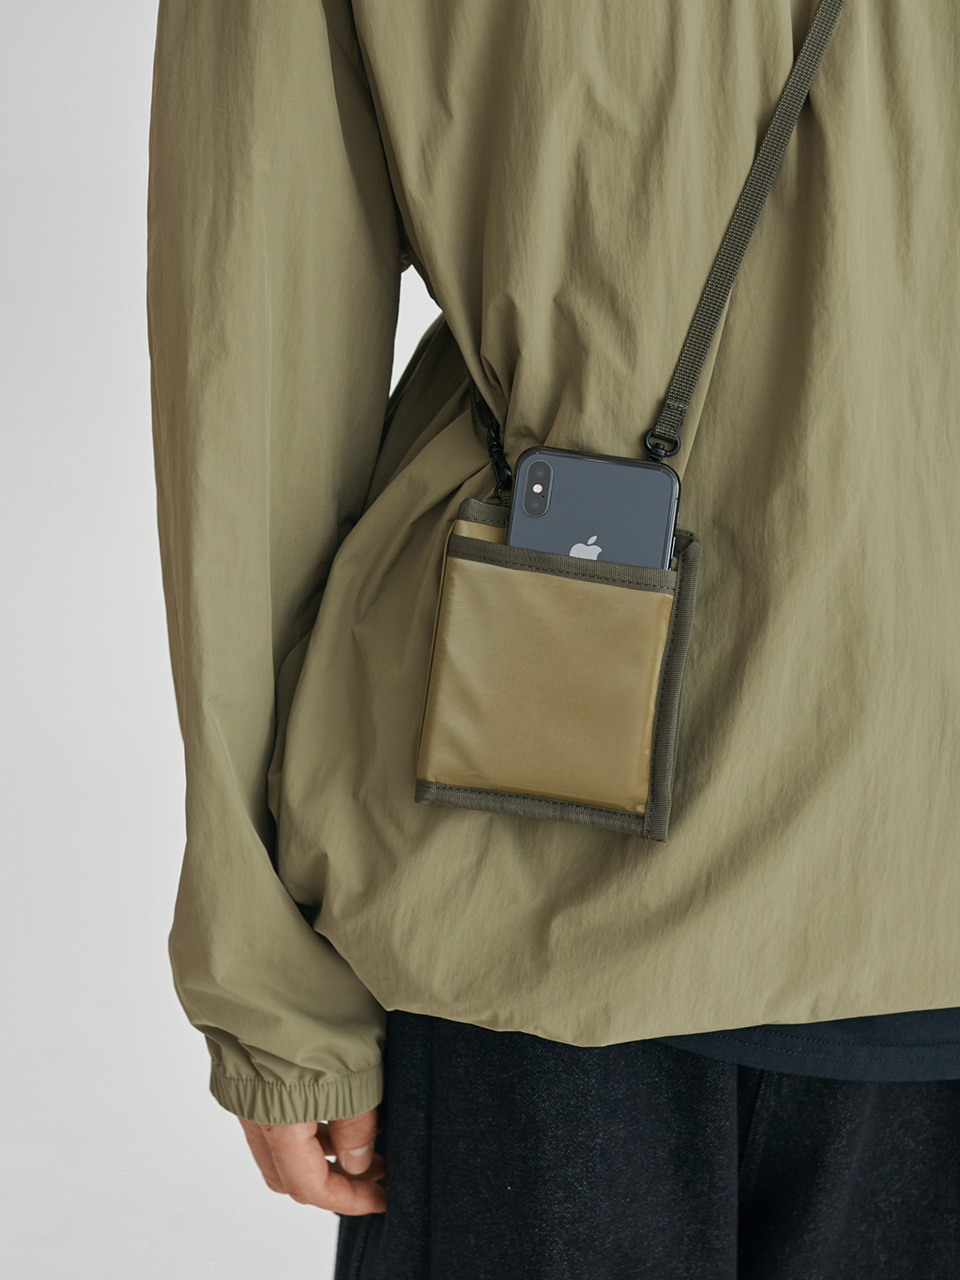 [FW20 Sounds Life] Wallet & Phone Cross Bag(Khaki) 스테레오 바이널즈[FW20 Sounds Life] Wallet & Phone Cross Bag(Khaki)